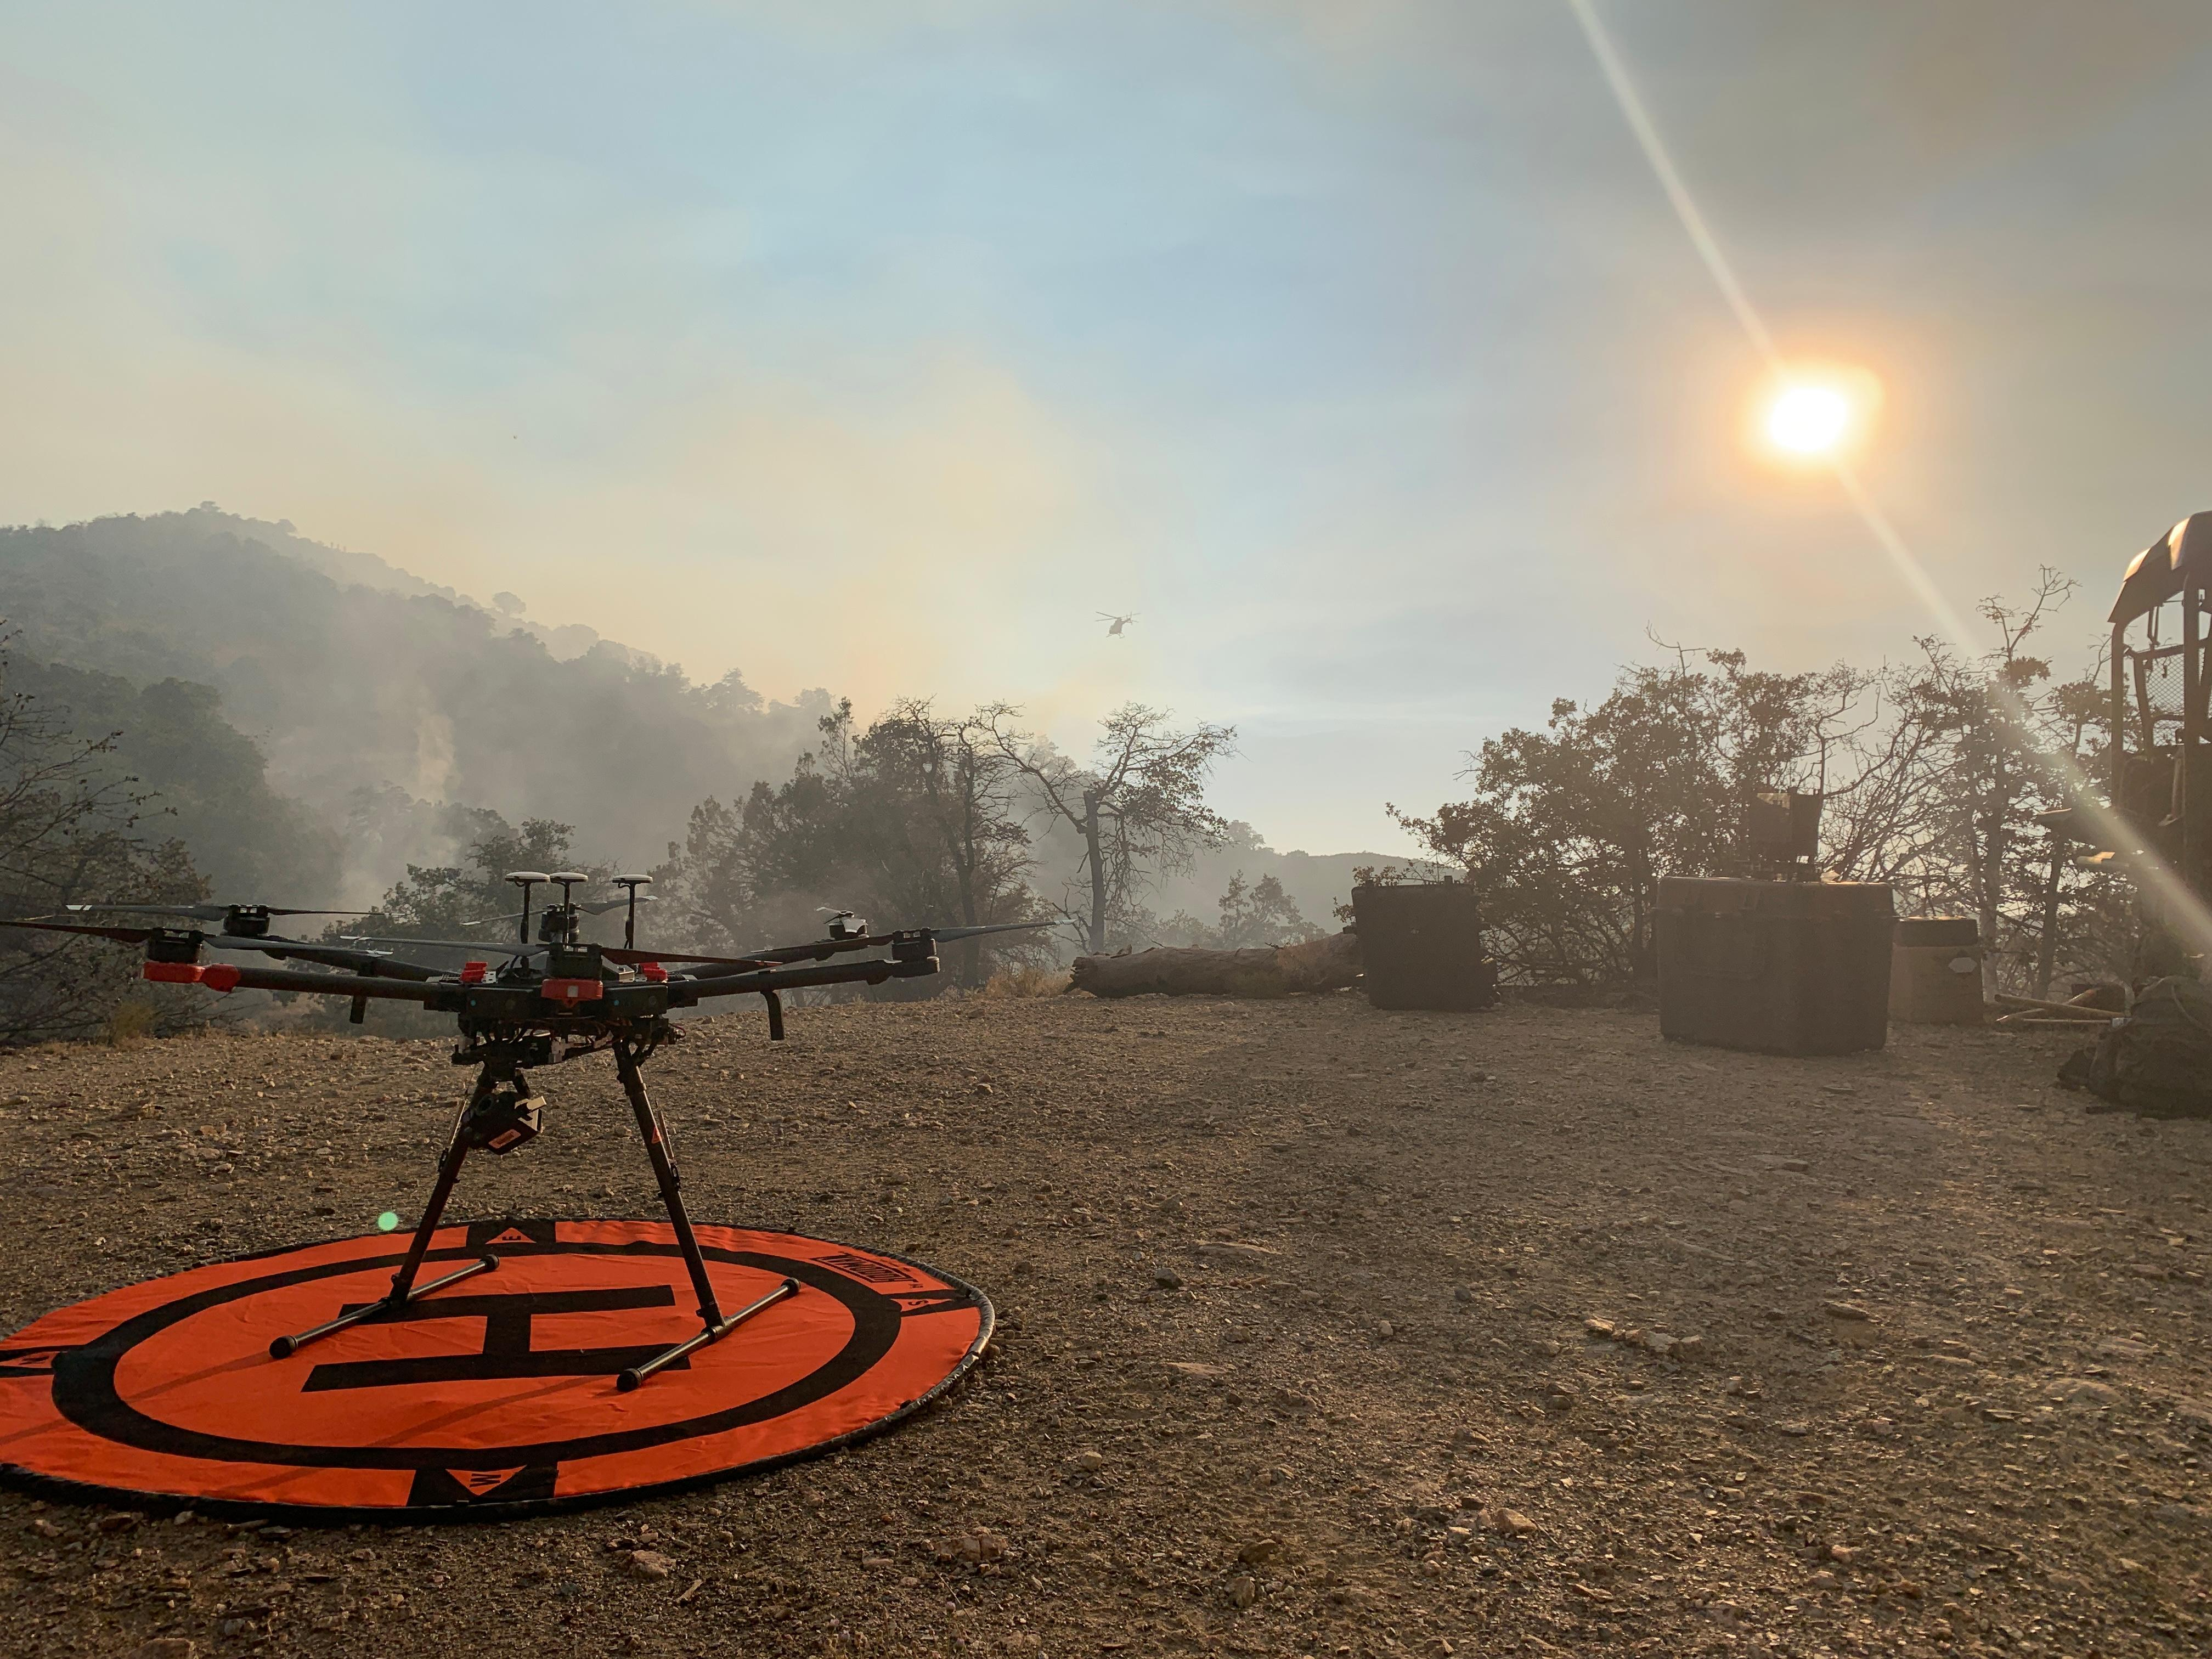 Unmanned Aircraft System (UAS)